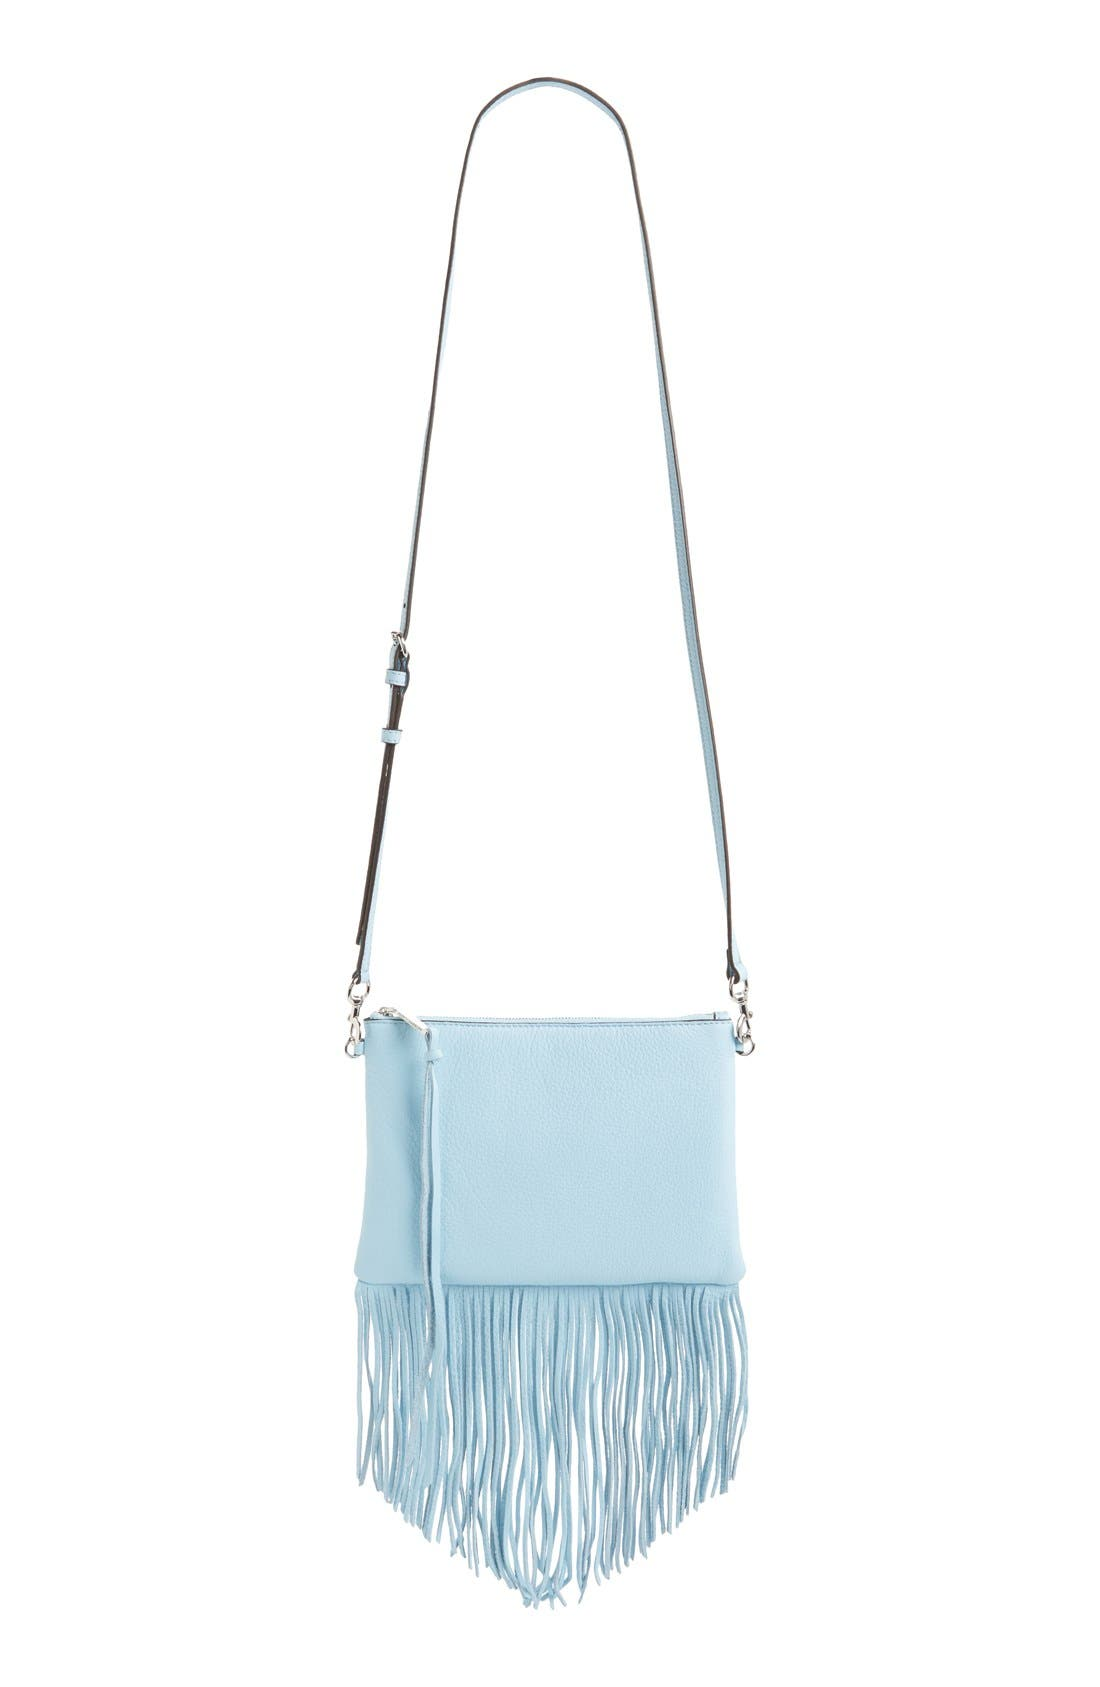 Alternate Image 1 Selected - Rebecca Minkoff 'Fringe Jon' Leather Crossbody Bag